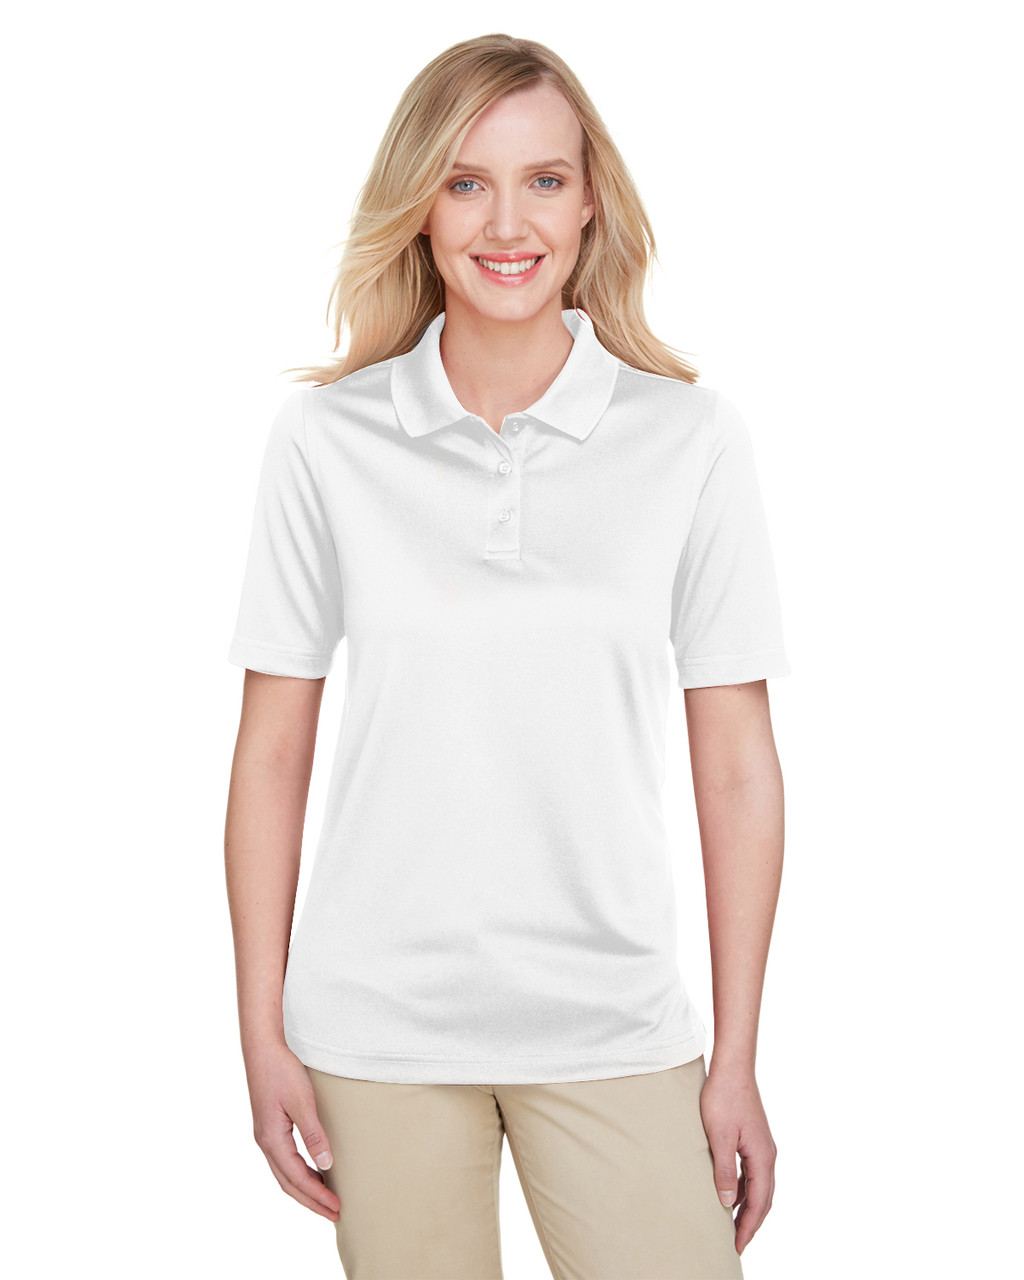 White - M348W Harriton Ladies' Advantage Snag Protection Plus IL Polo Shirt | Blankclothing.ca